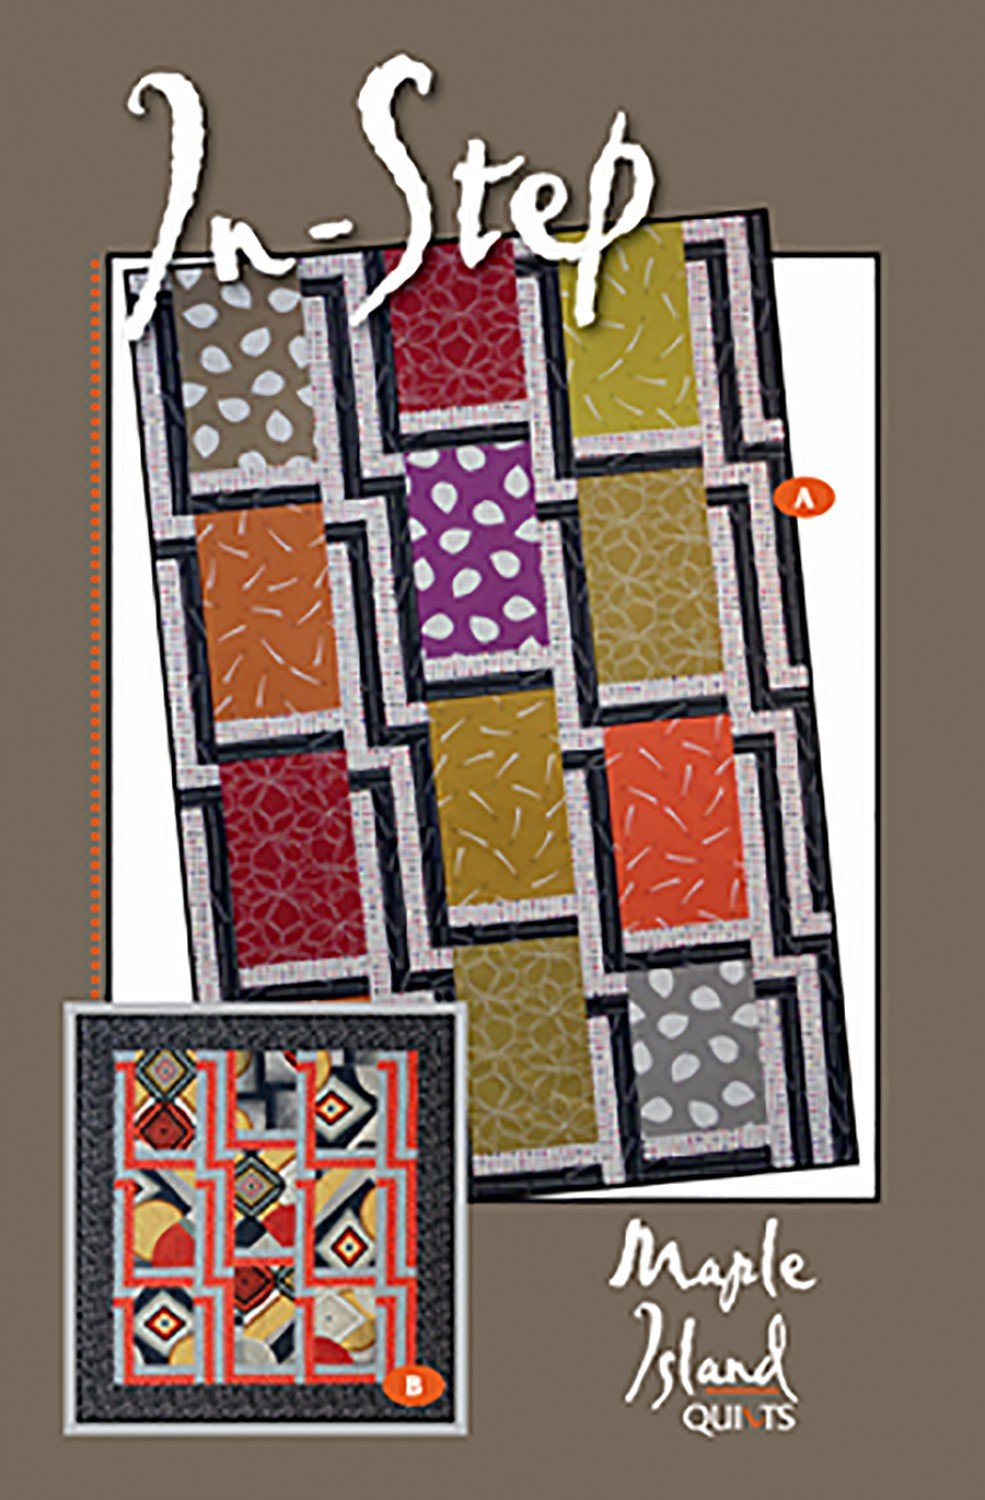 In-Step by Maple Island Quilts